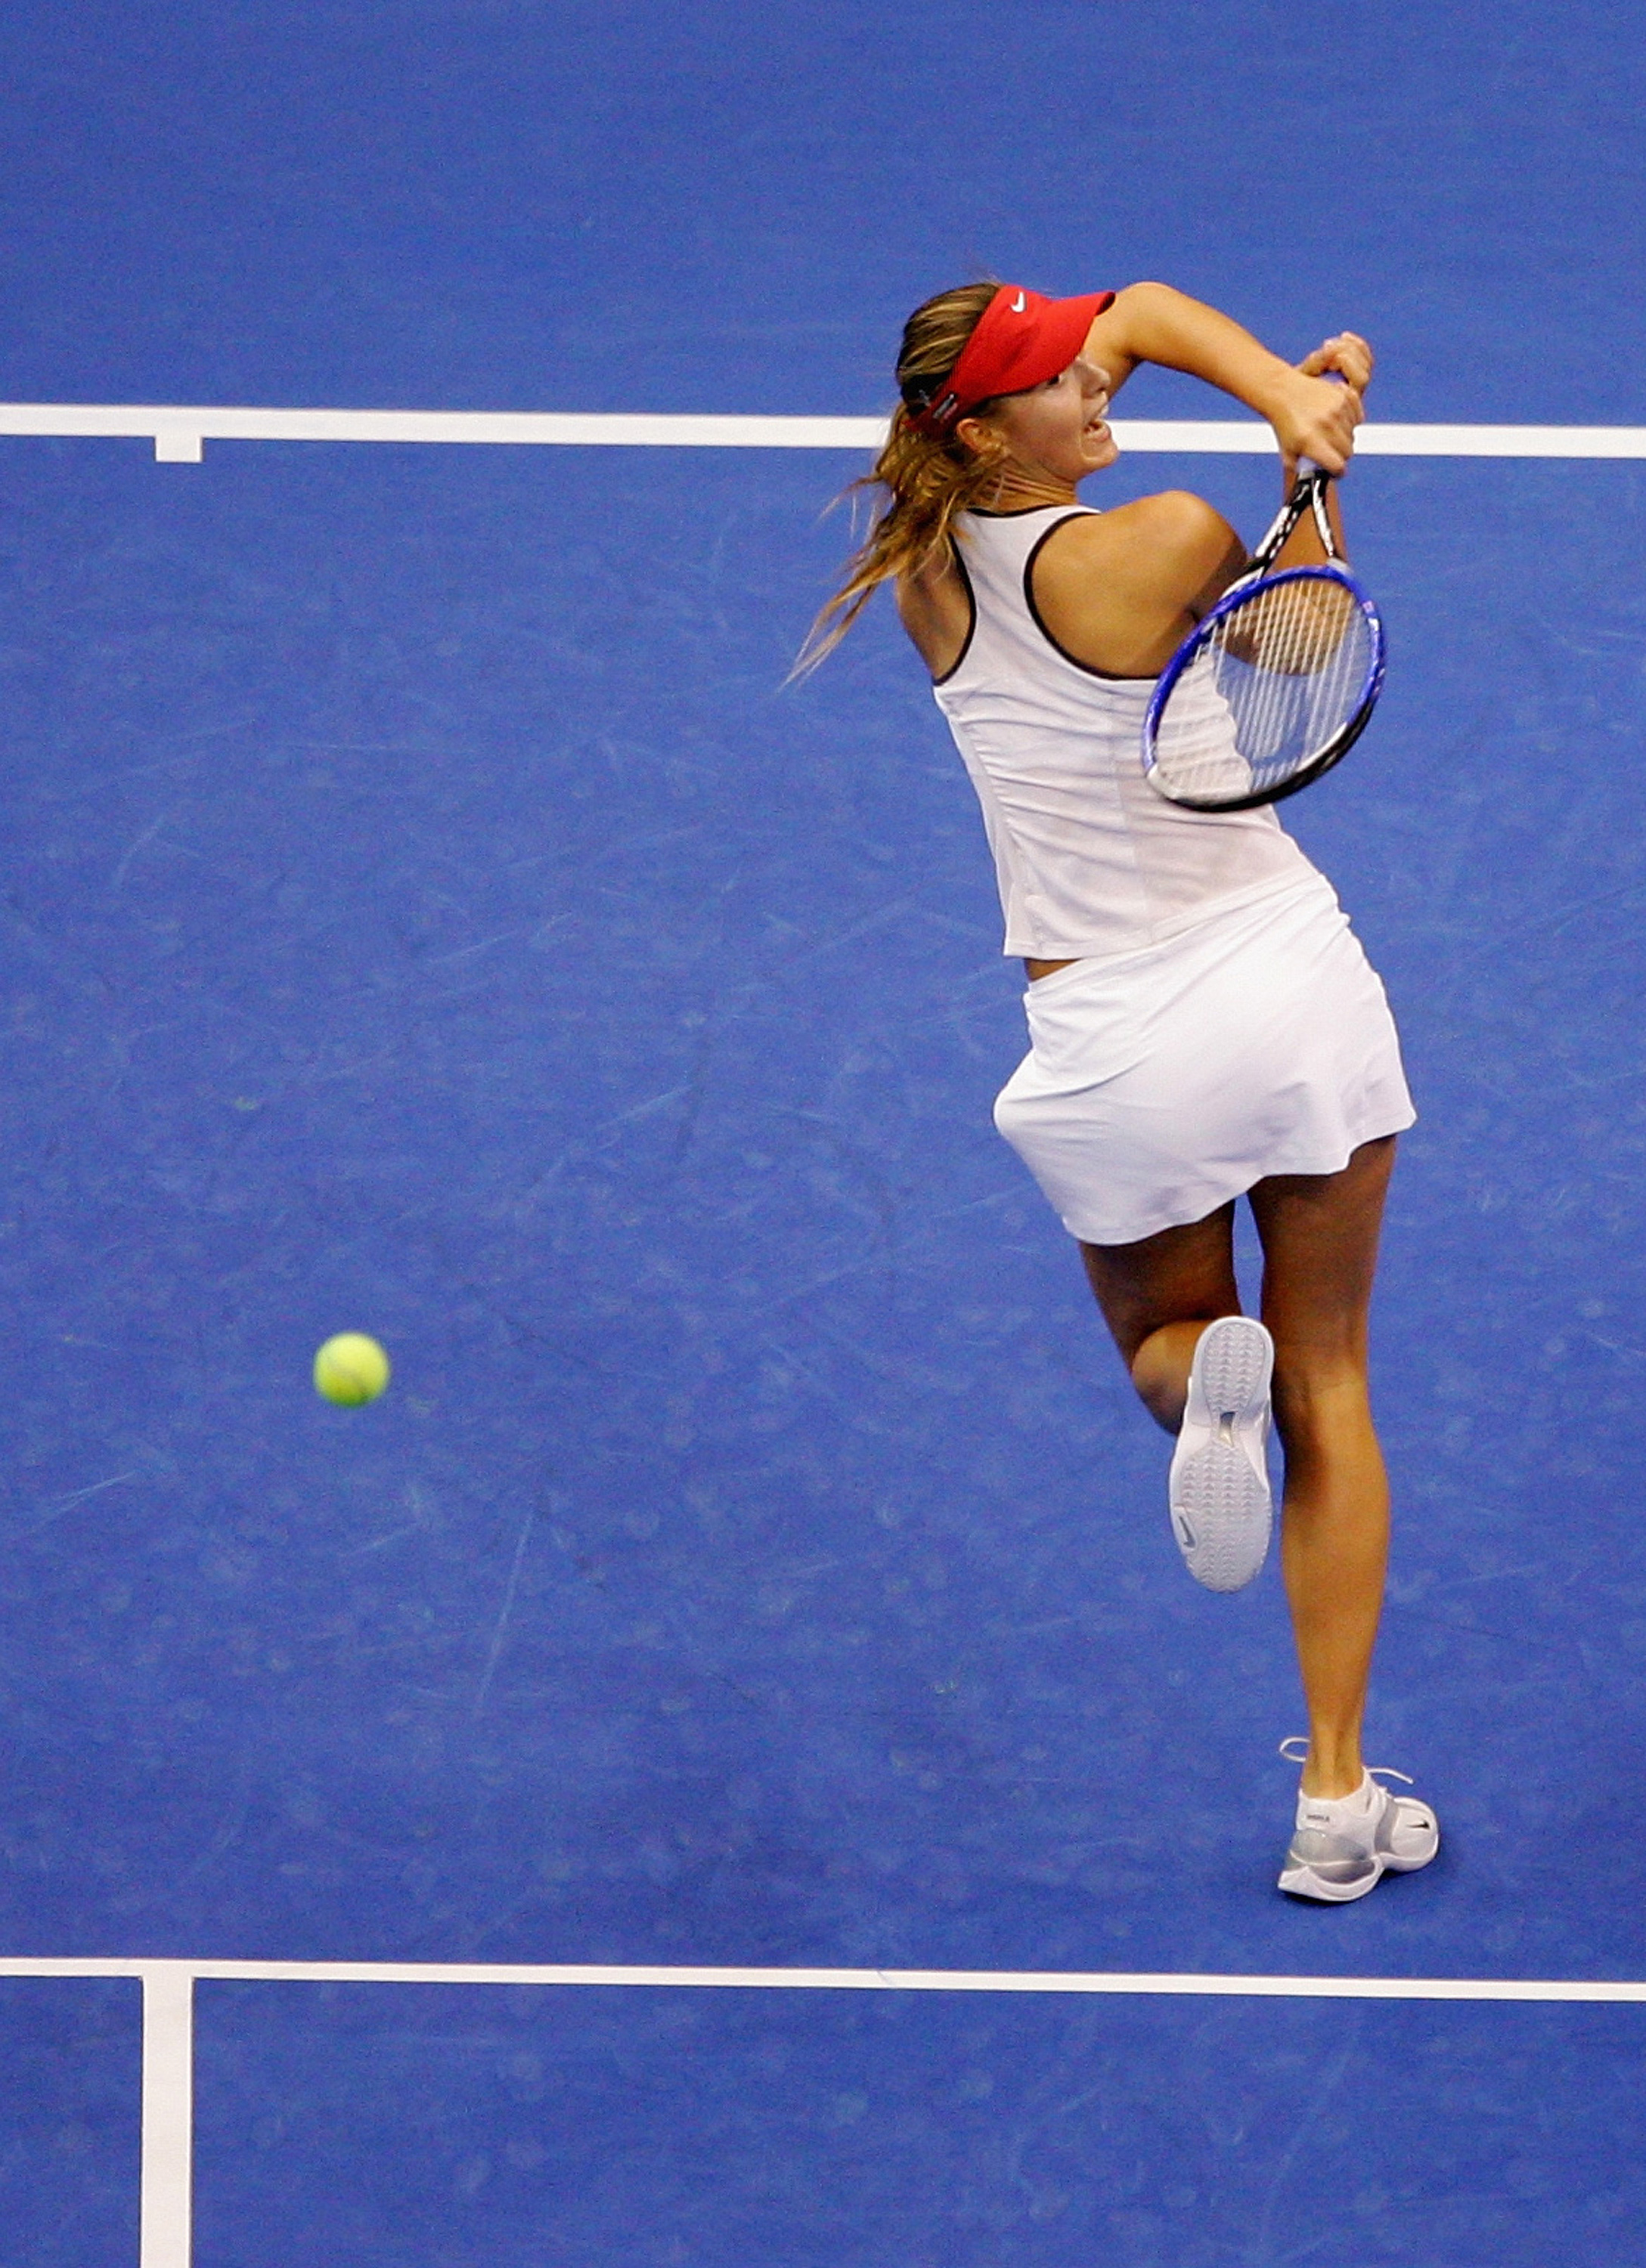 17-year-old Maria Sharapova made her debut after winning Wimbledon that year.